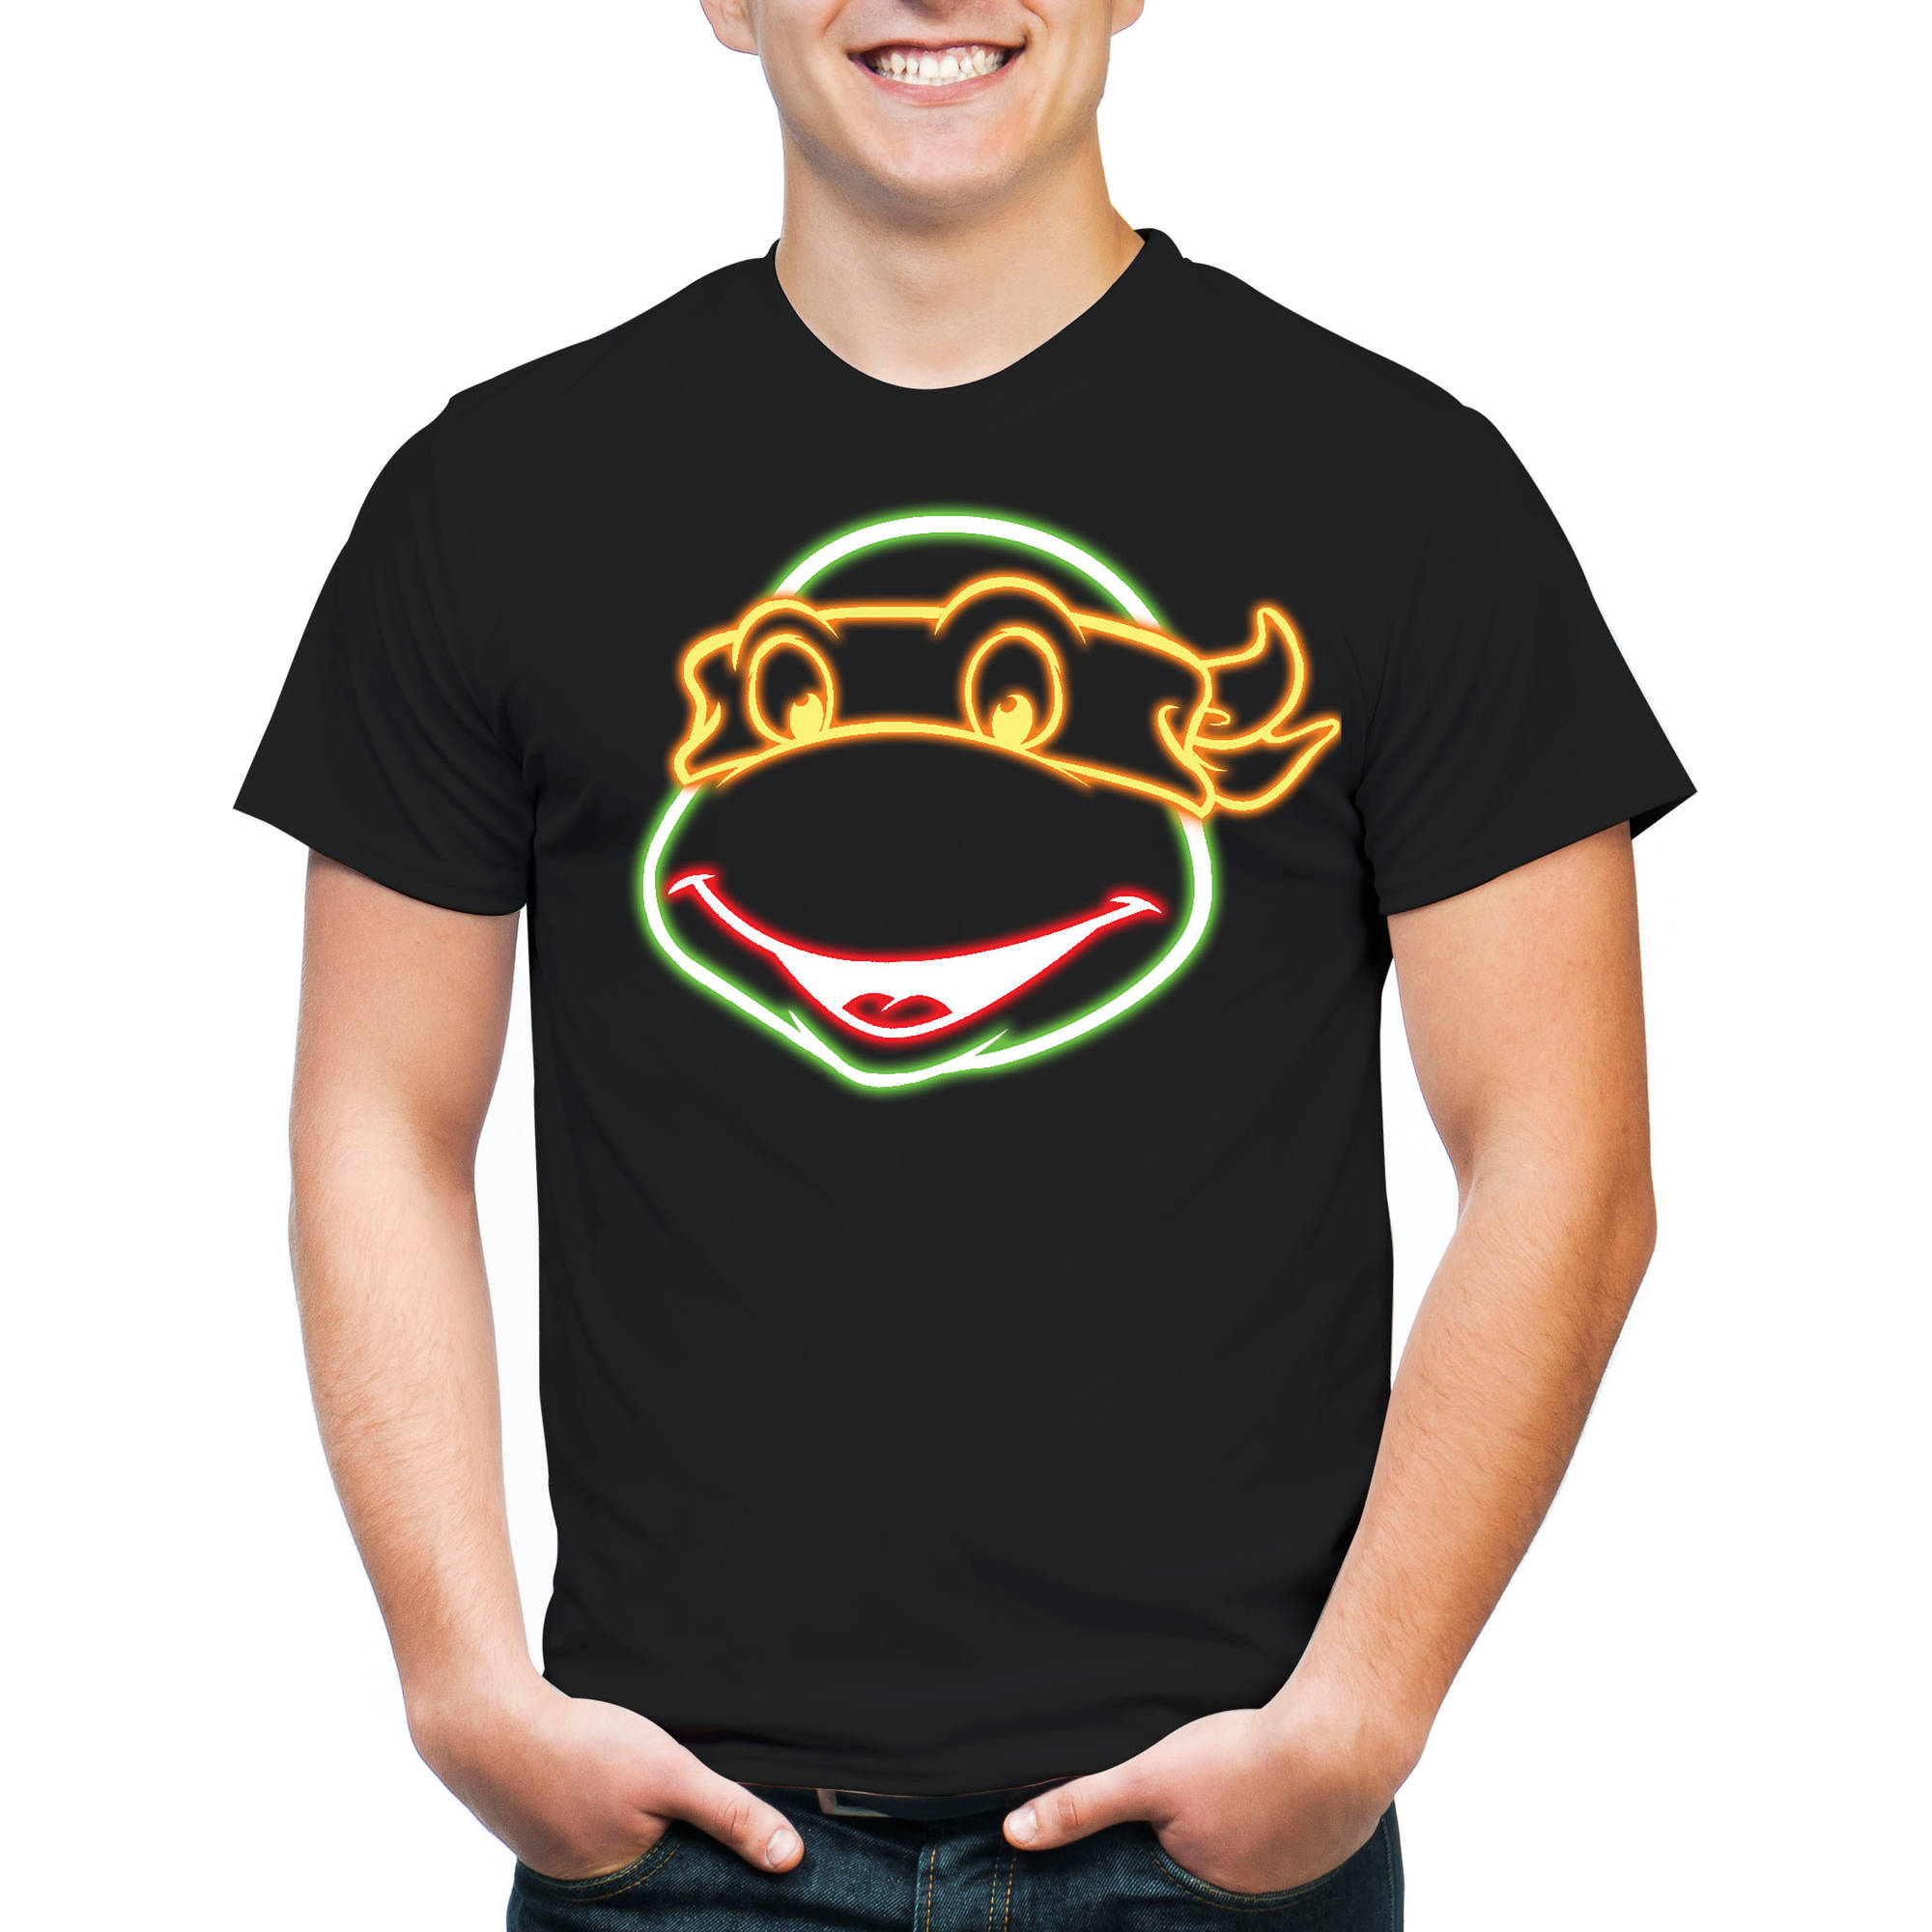 TMNT Michaelangelo Head Men's Graphic Short Sleeve T-Shirt, 2XL